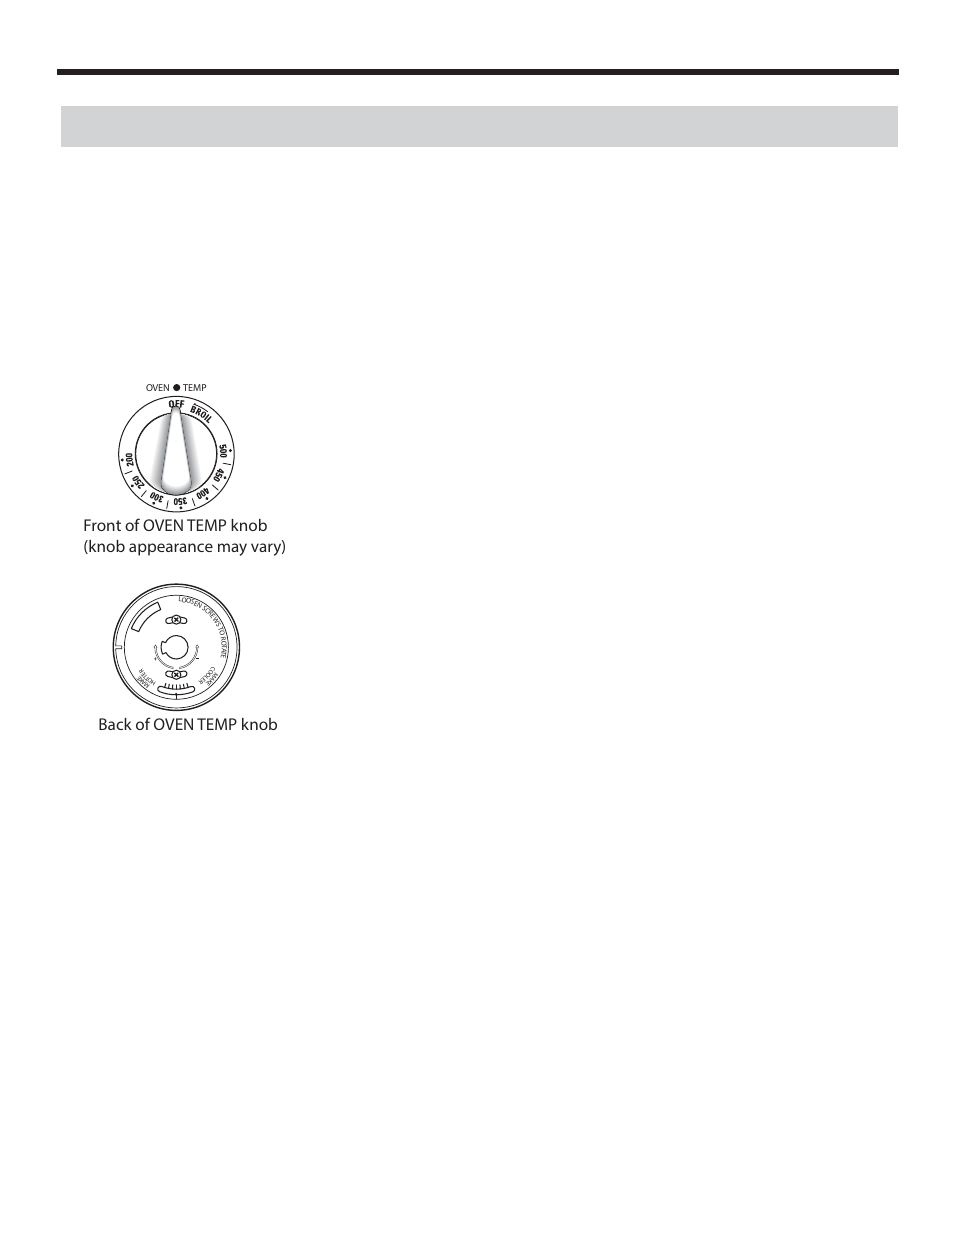 Operation instructions, Adjust the oven thermostat - easy to do